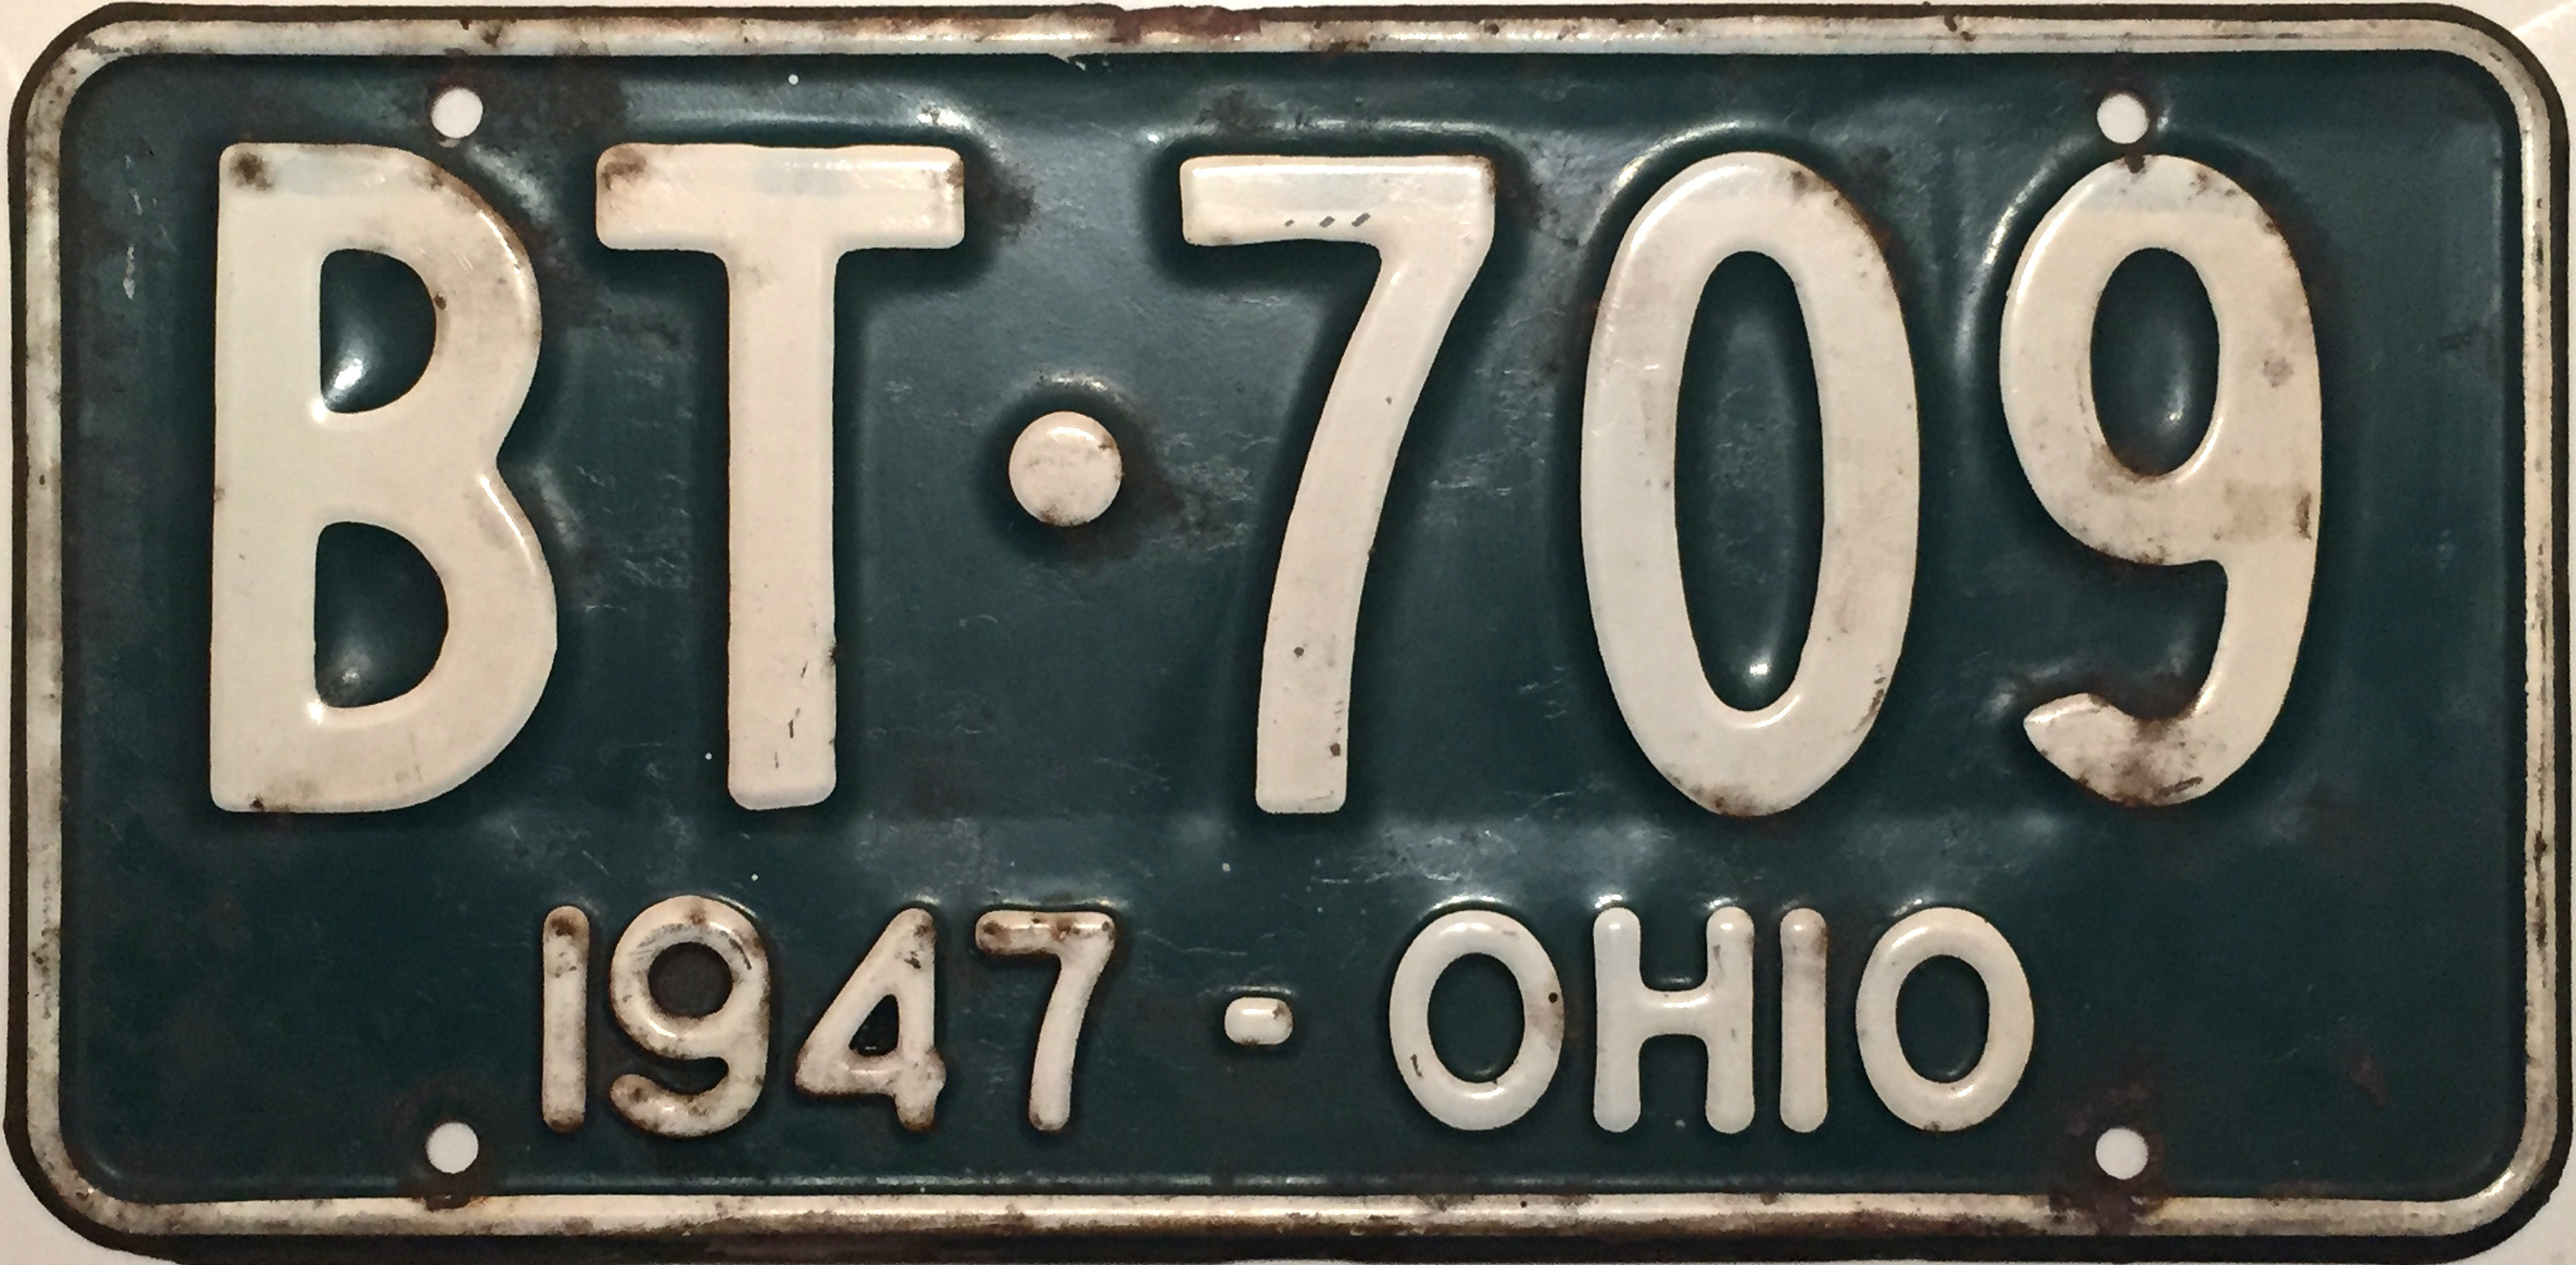 File:1947 Ohio license plate.JPG - Wikimedia Commons